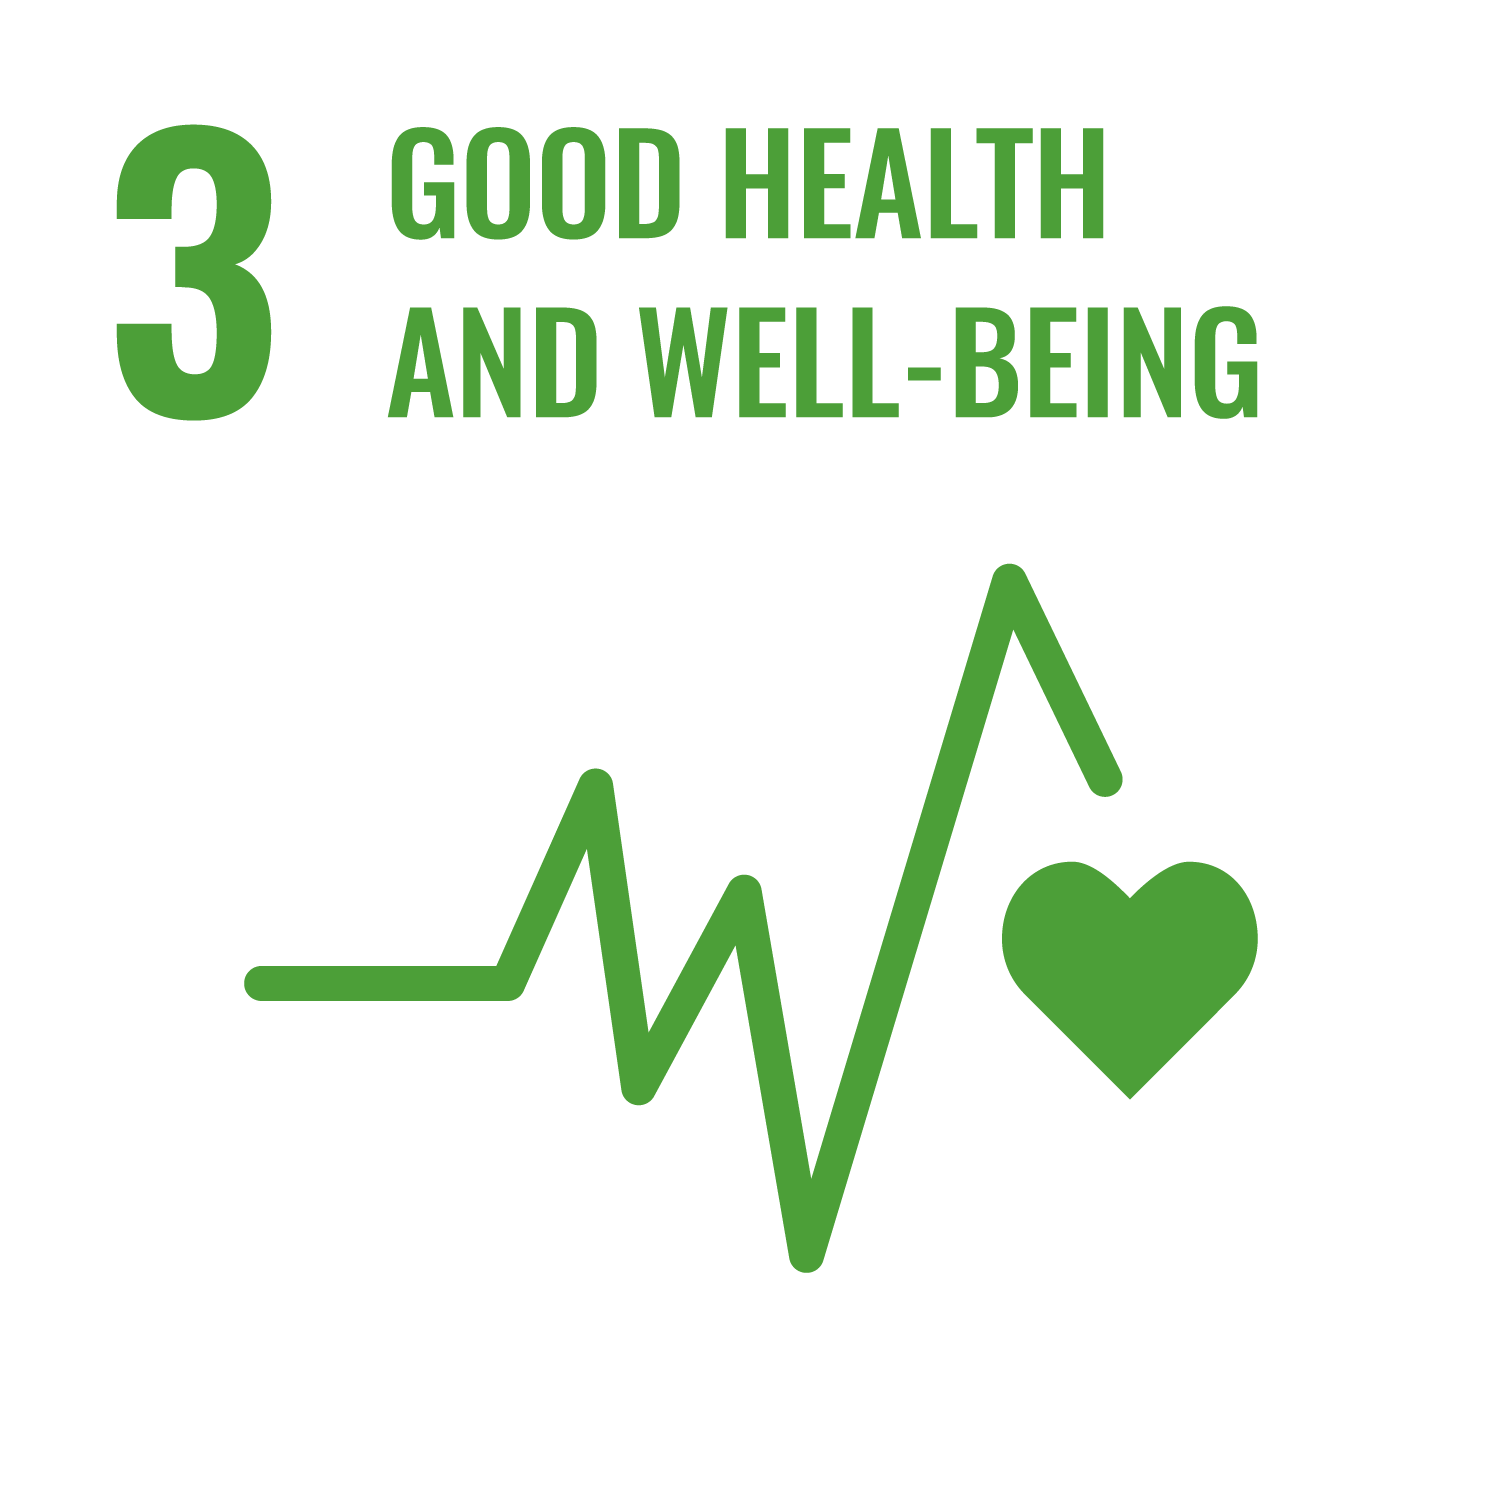 Icon for the Sustainable Development Goal Good health and well-being